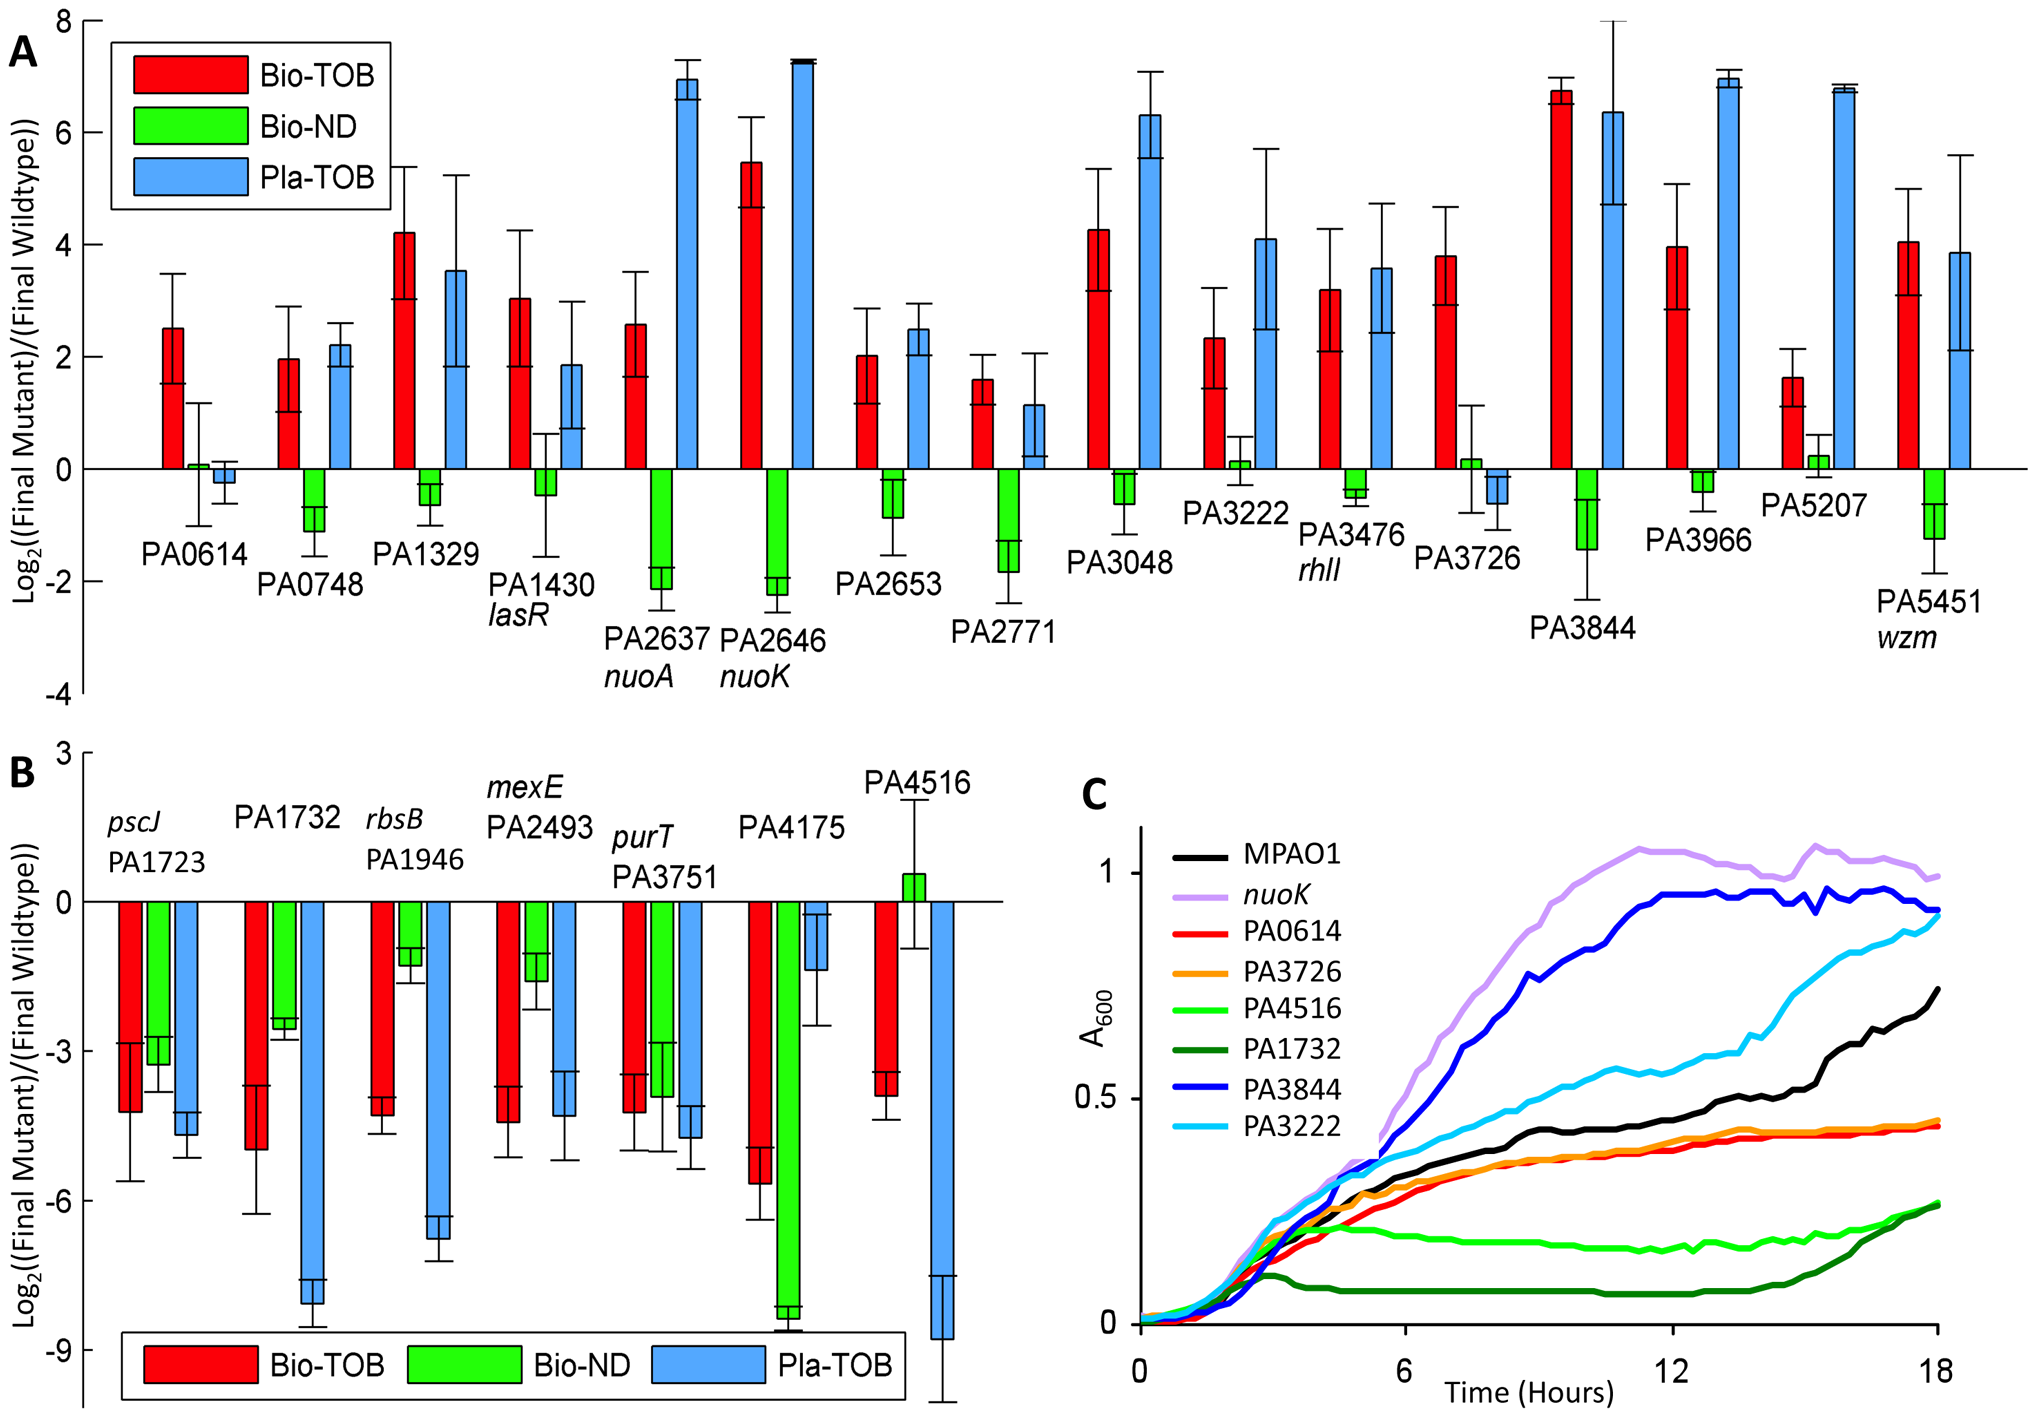 Fitness characterization of candidate mutants in different physiological states.